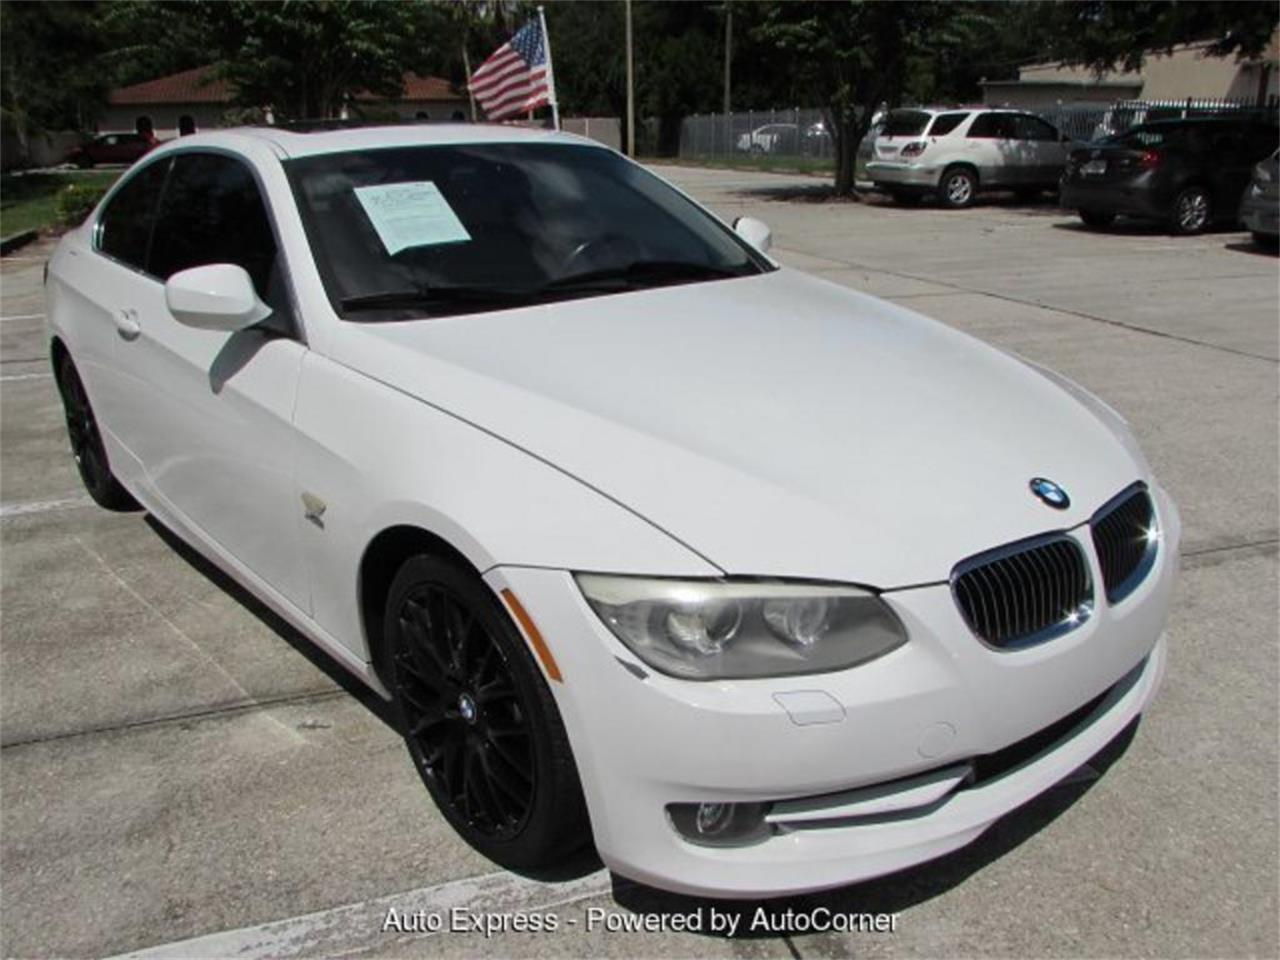 Large Picture of '11 BMW 3 Series - $10,950.00 Offered by Auto Express - Q2AO